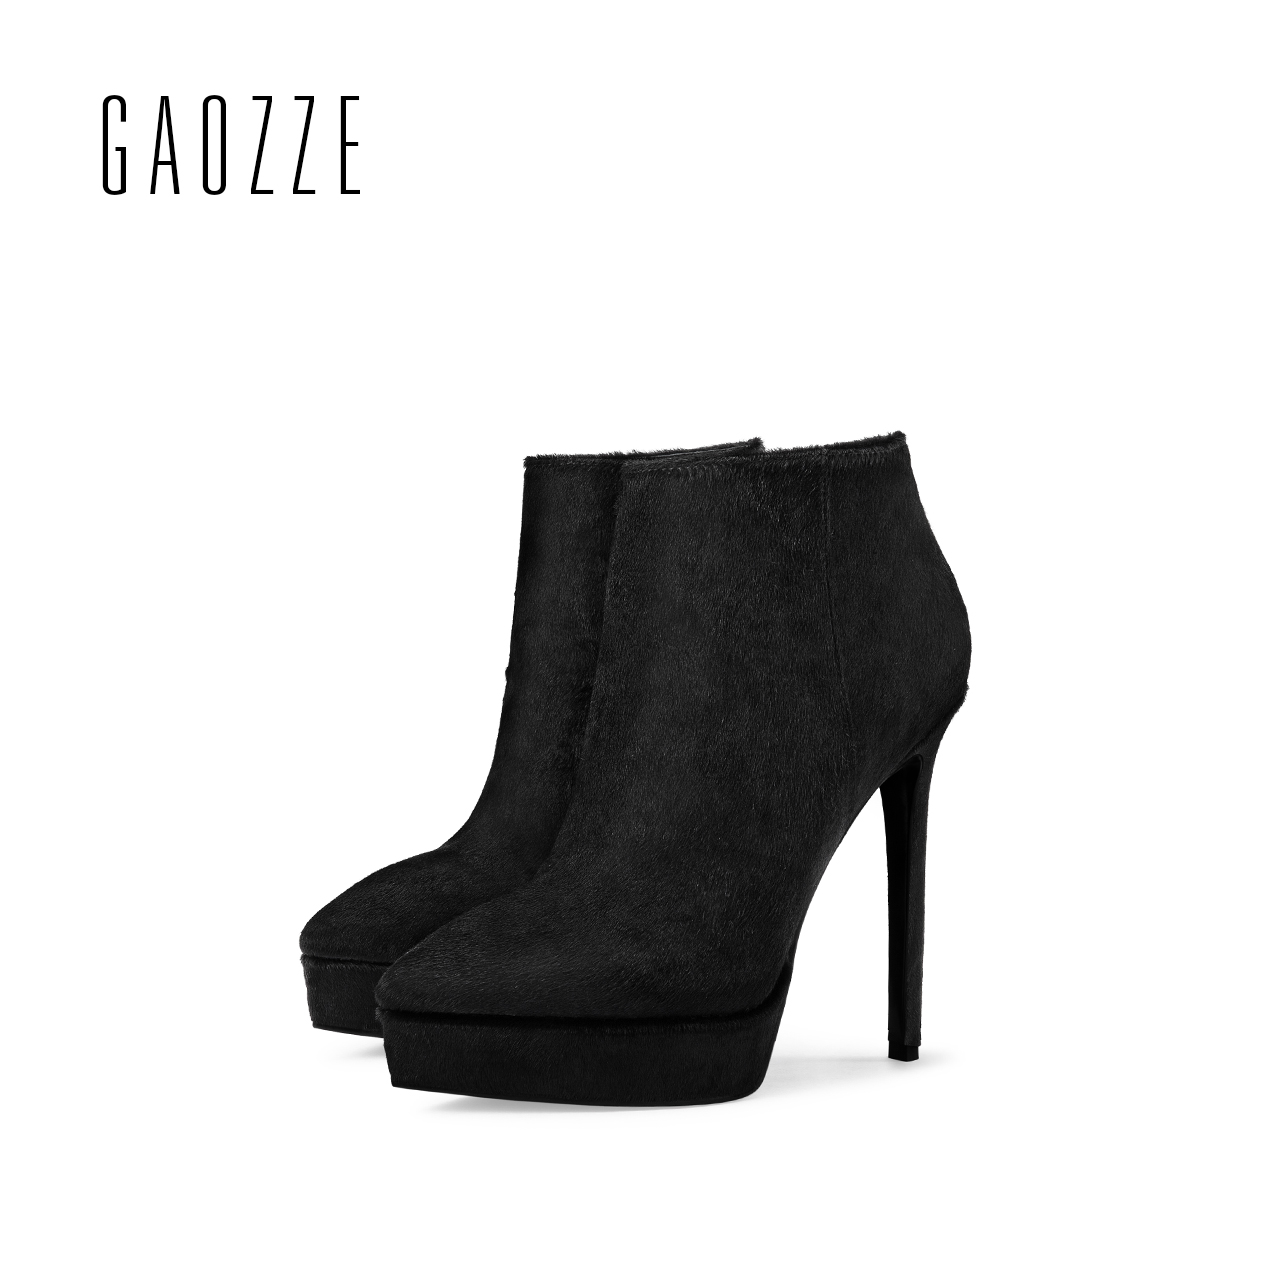 GAOZZE high heel ankle boots for women 2017 autumn new black leather ankle boots side zipper fashion pointed platform ankle boot